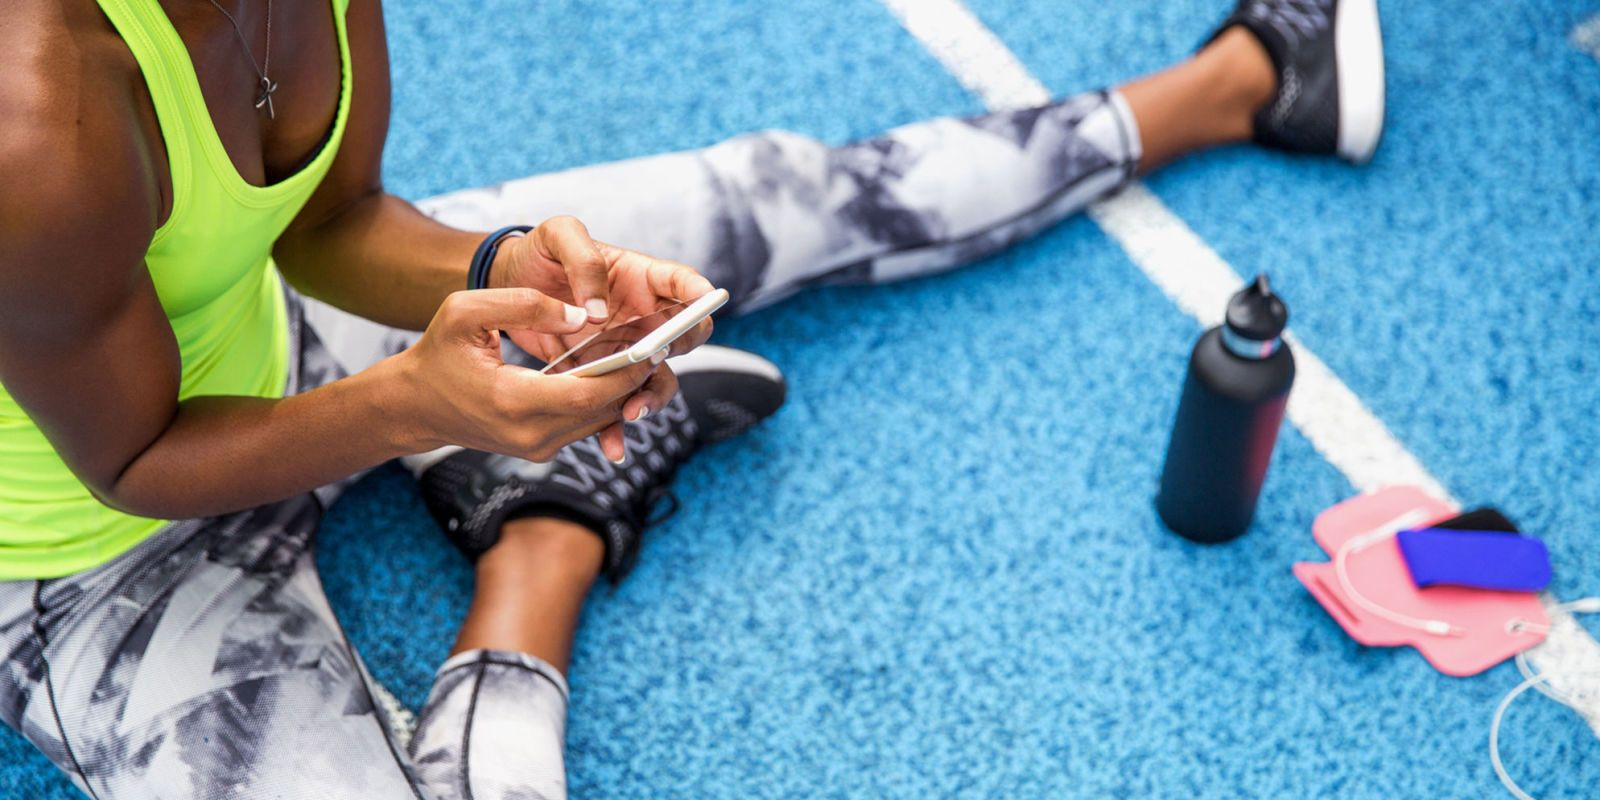 13 Workout Apps You'll Want to Download Right Now